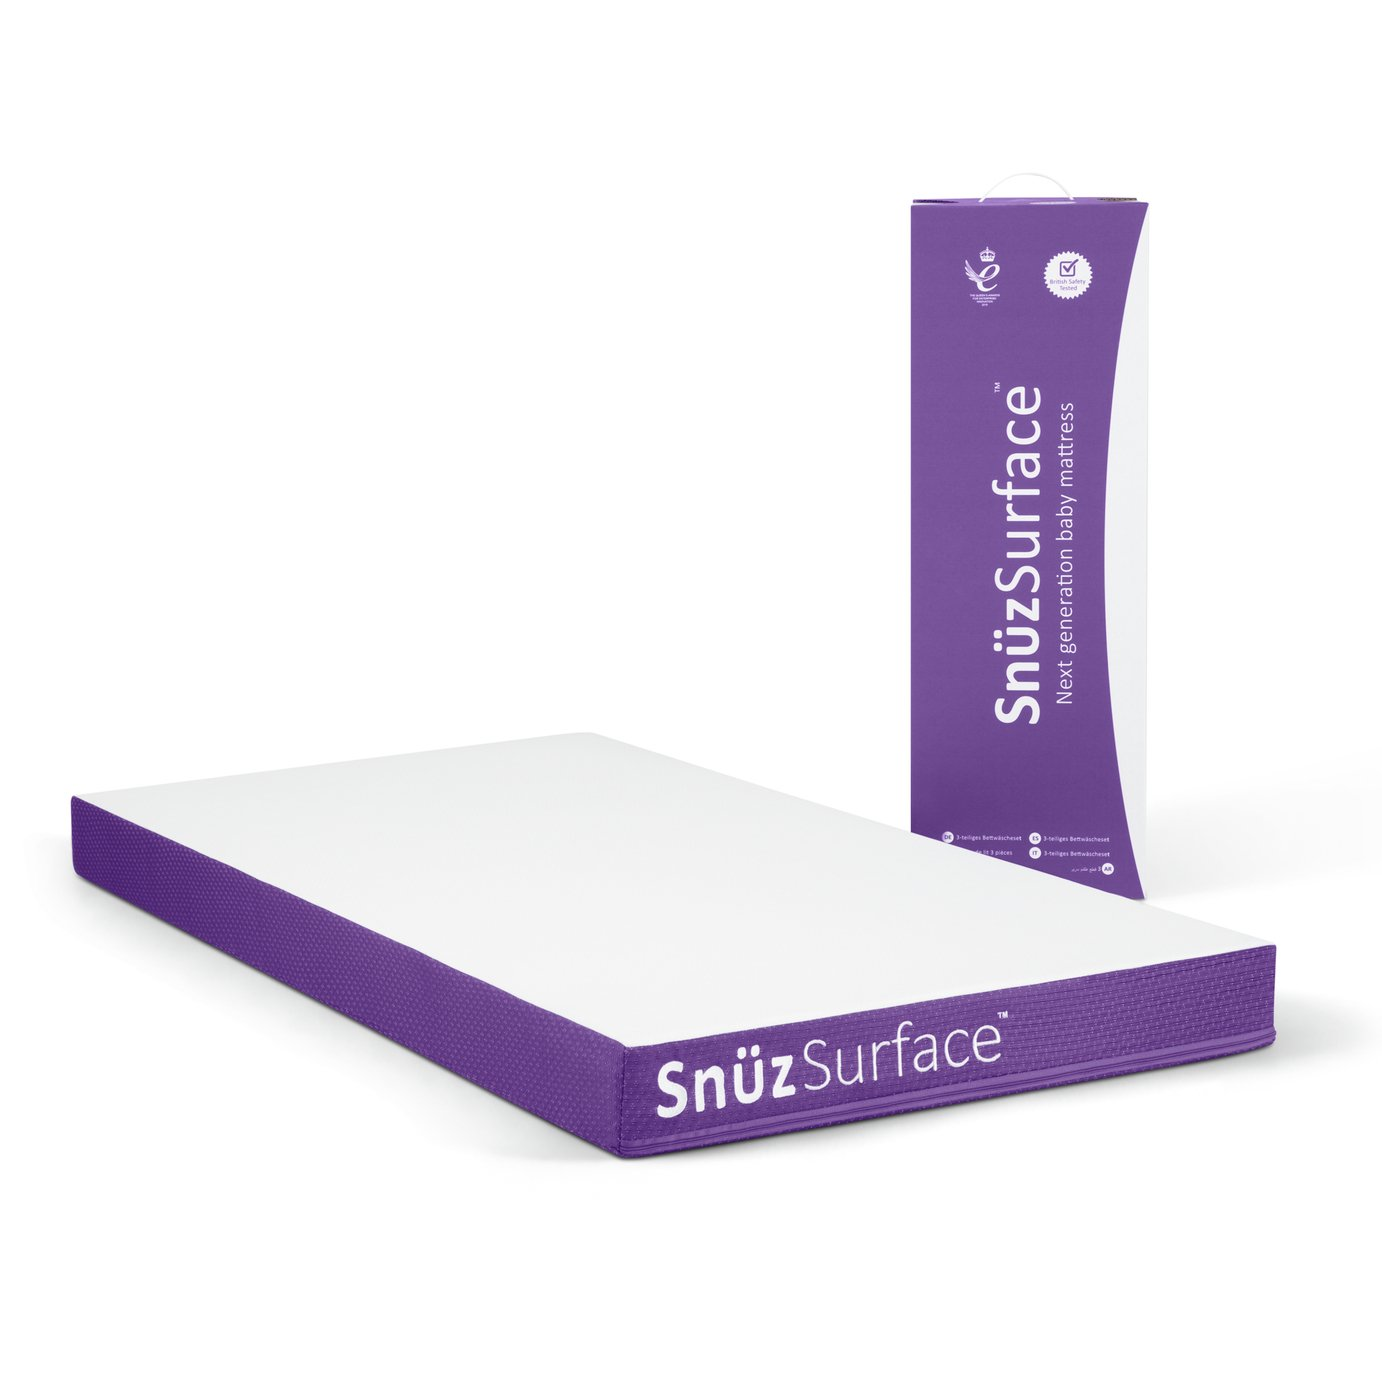 SnuzSurface Cot Bed Mattress 70 x 140cm